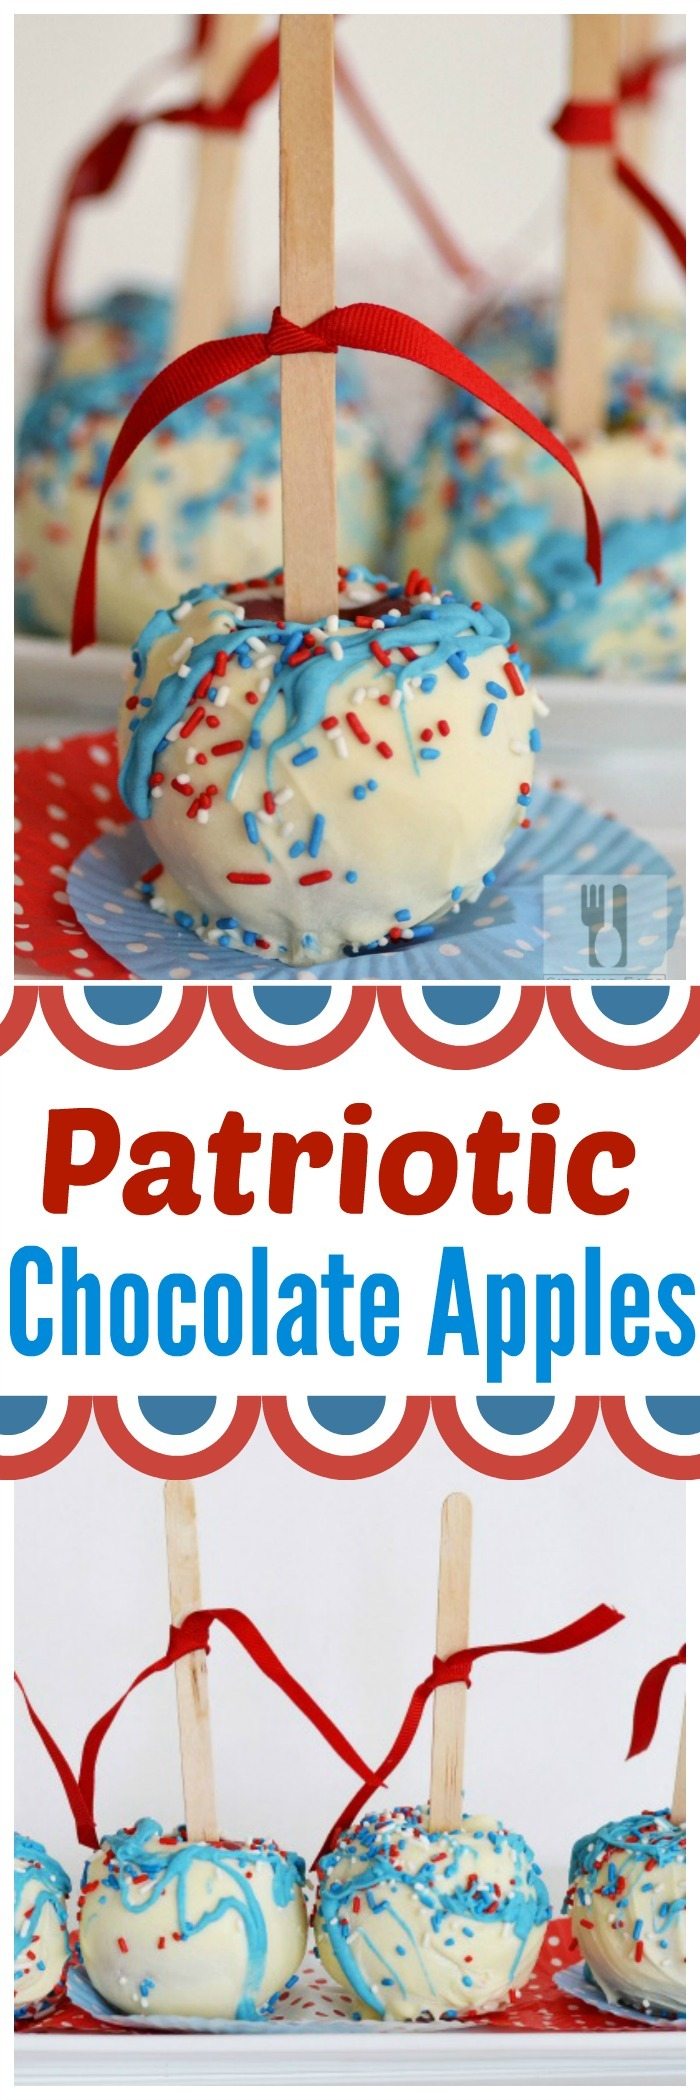 Patriotic Chocolate Dipped Apples!